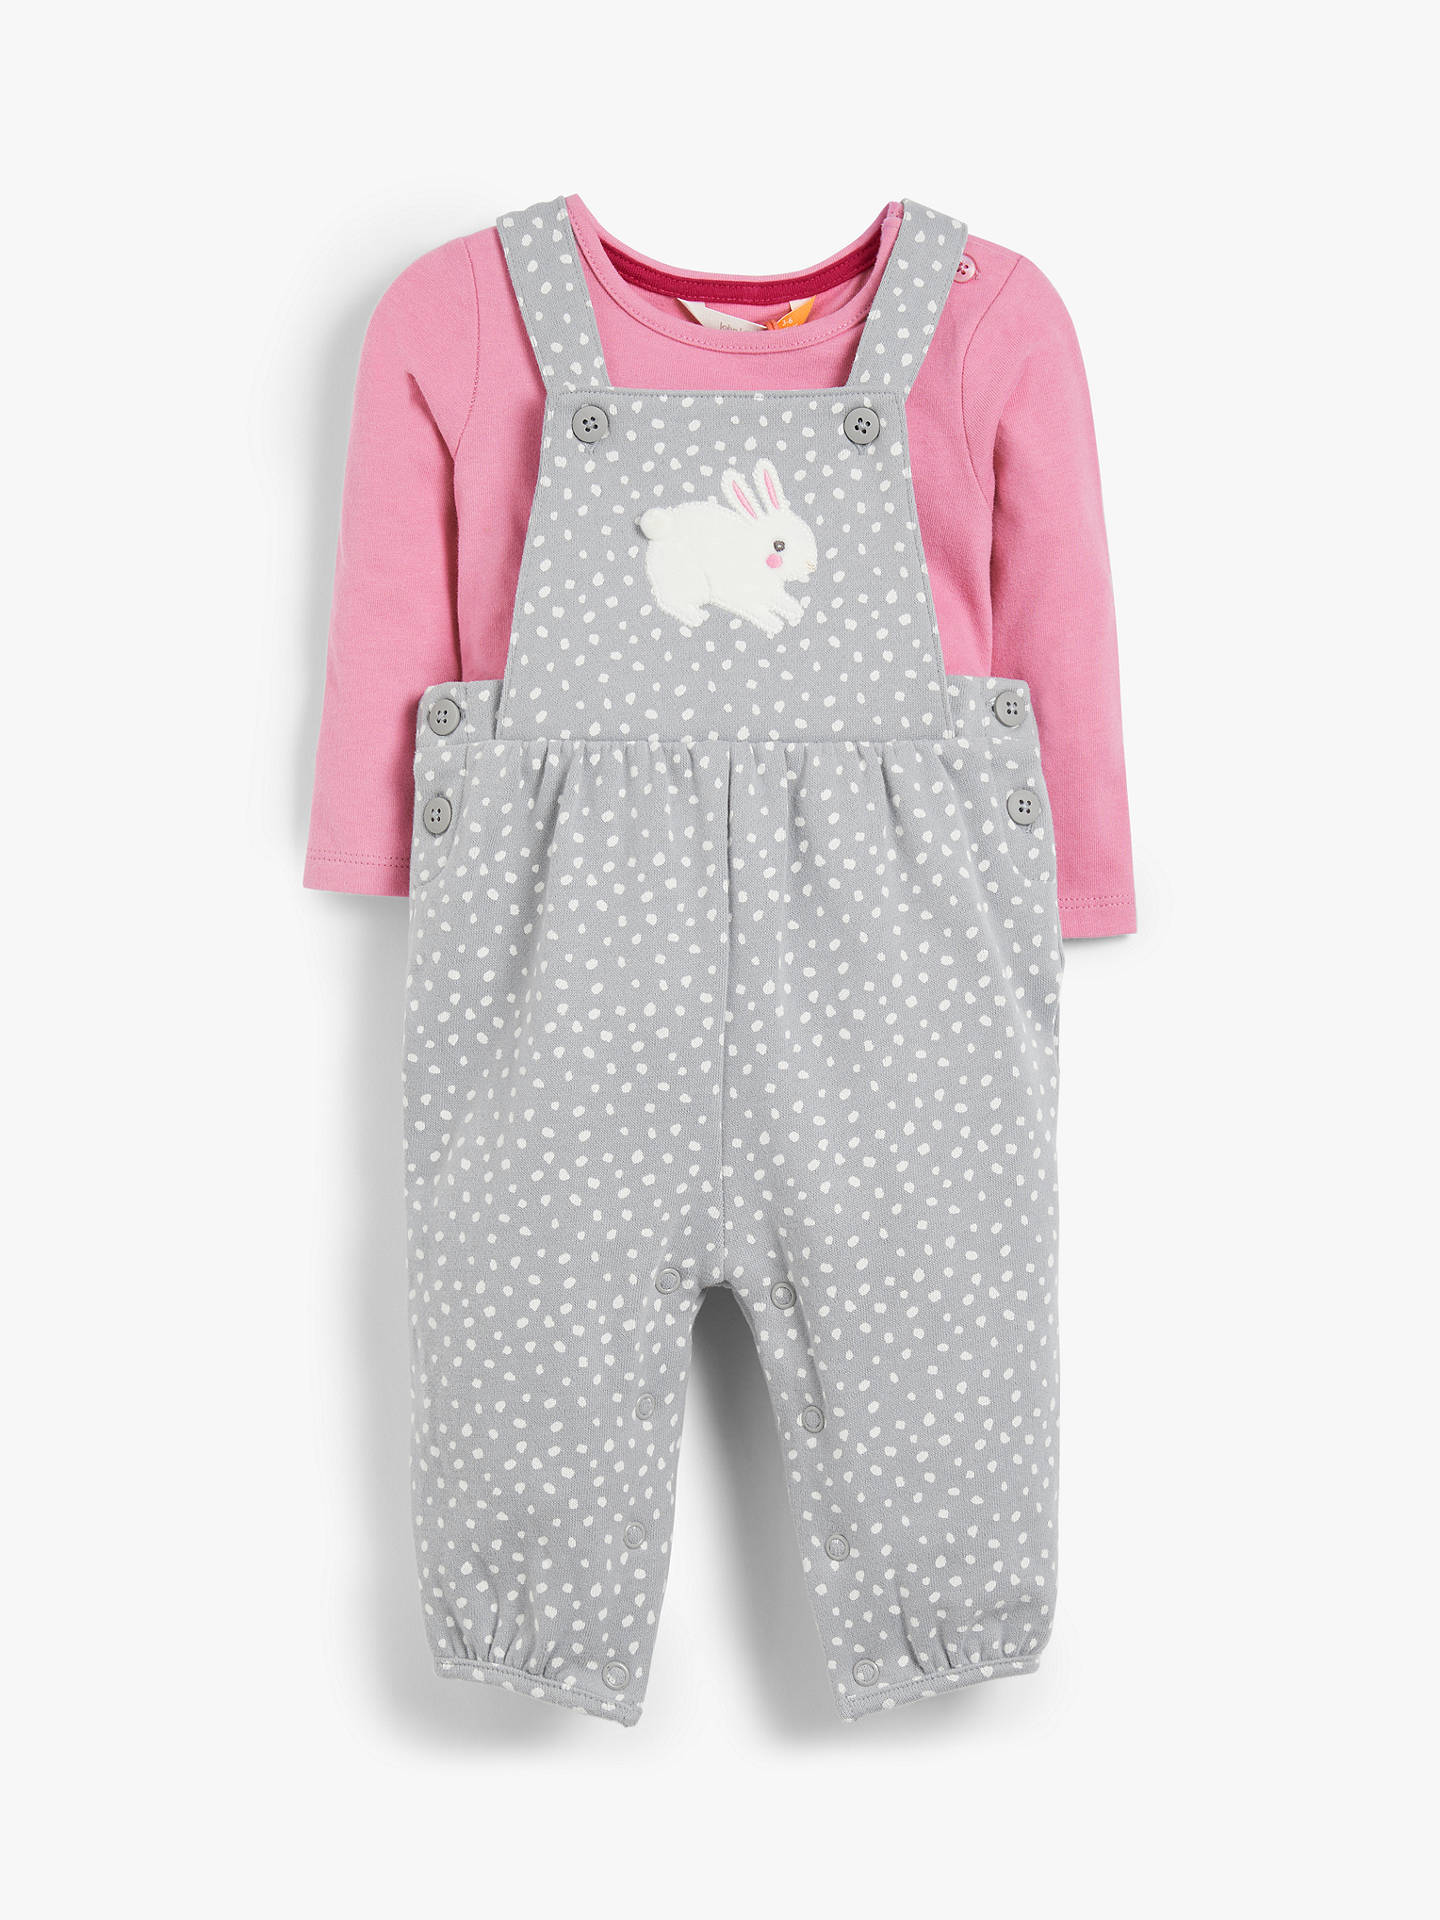 6-9 months 100/% Cotton Cute Pink Baby Girls Bunny Dungaree and Top Set 0-3 3-6